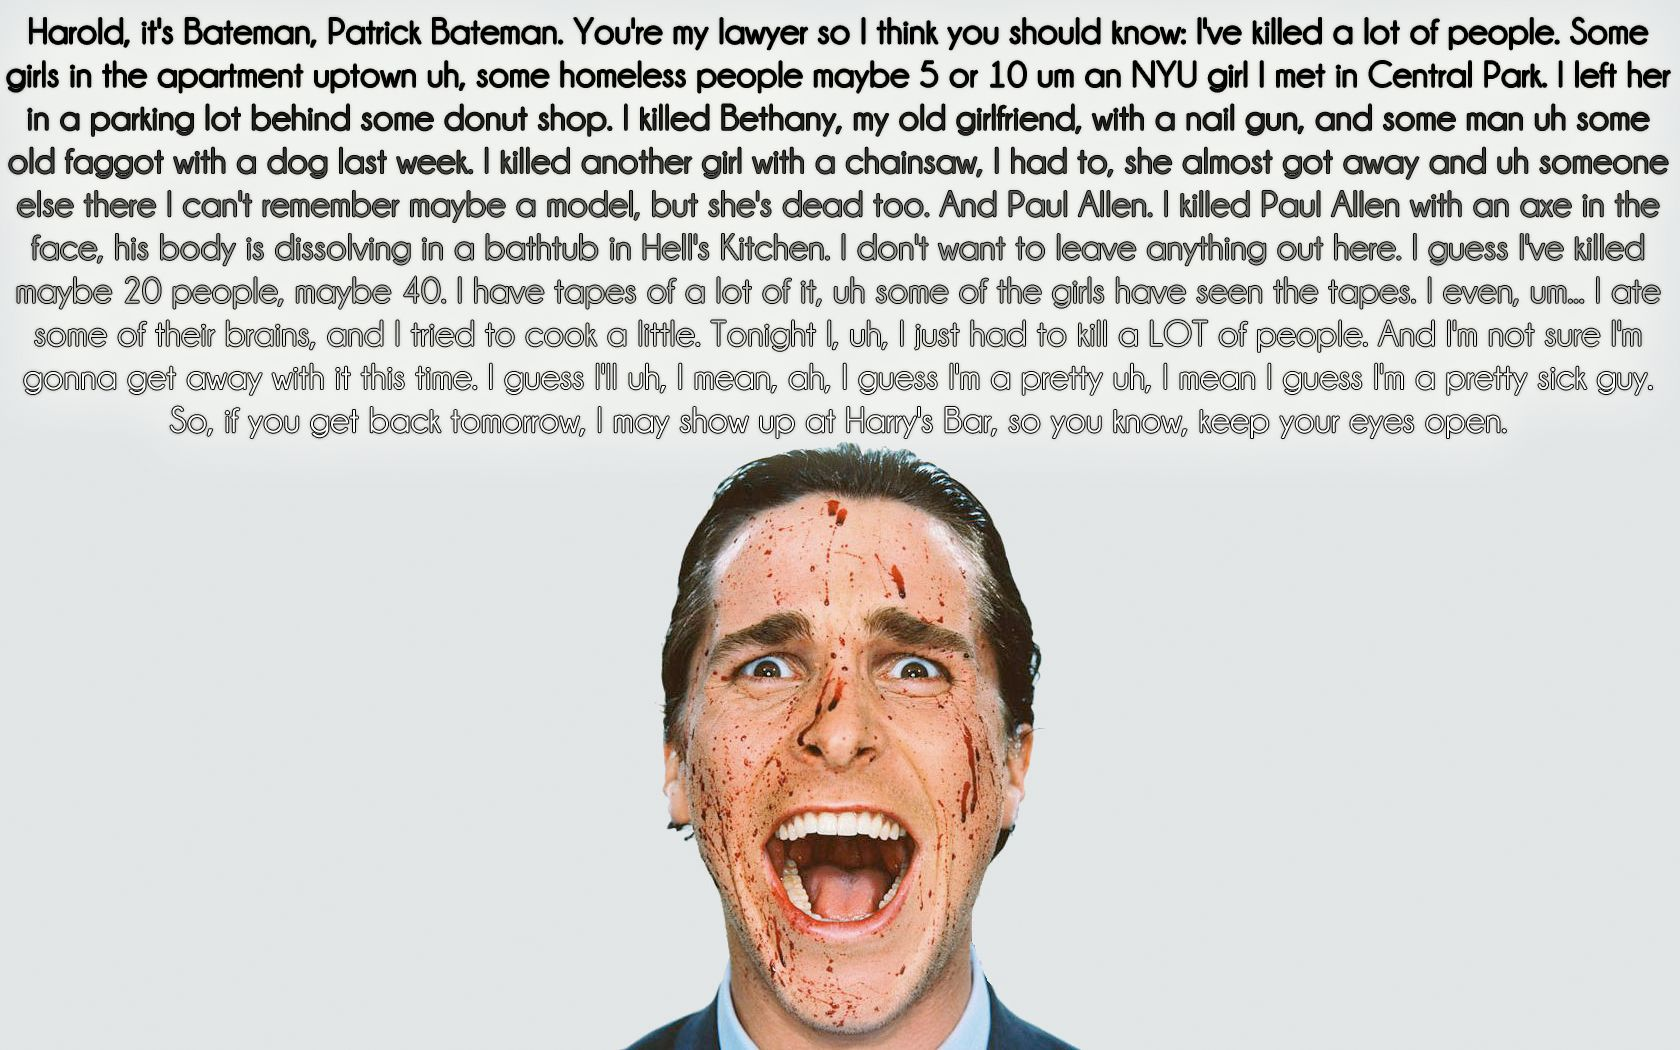 American Psycho Quotes American Psycho Book Quotes  Google Search  Sharing Food For .